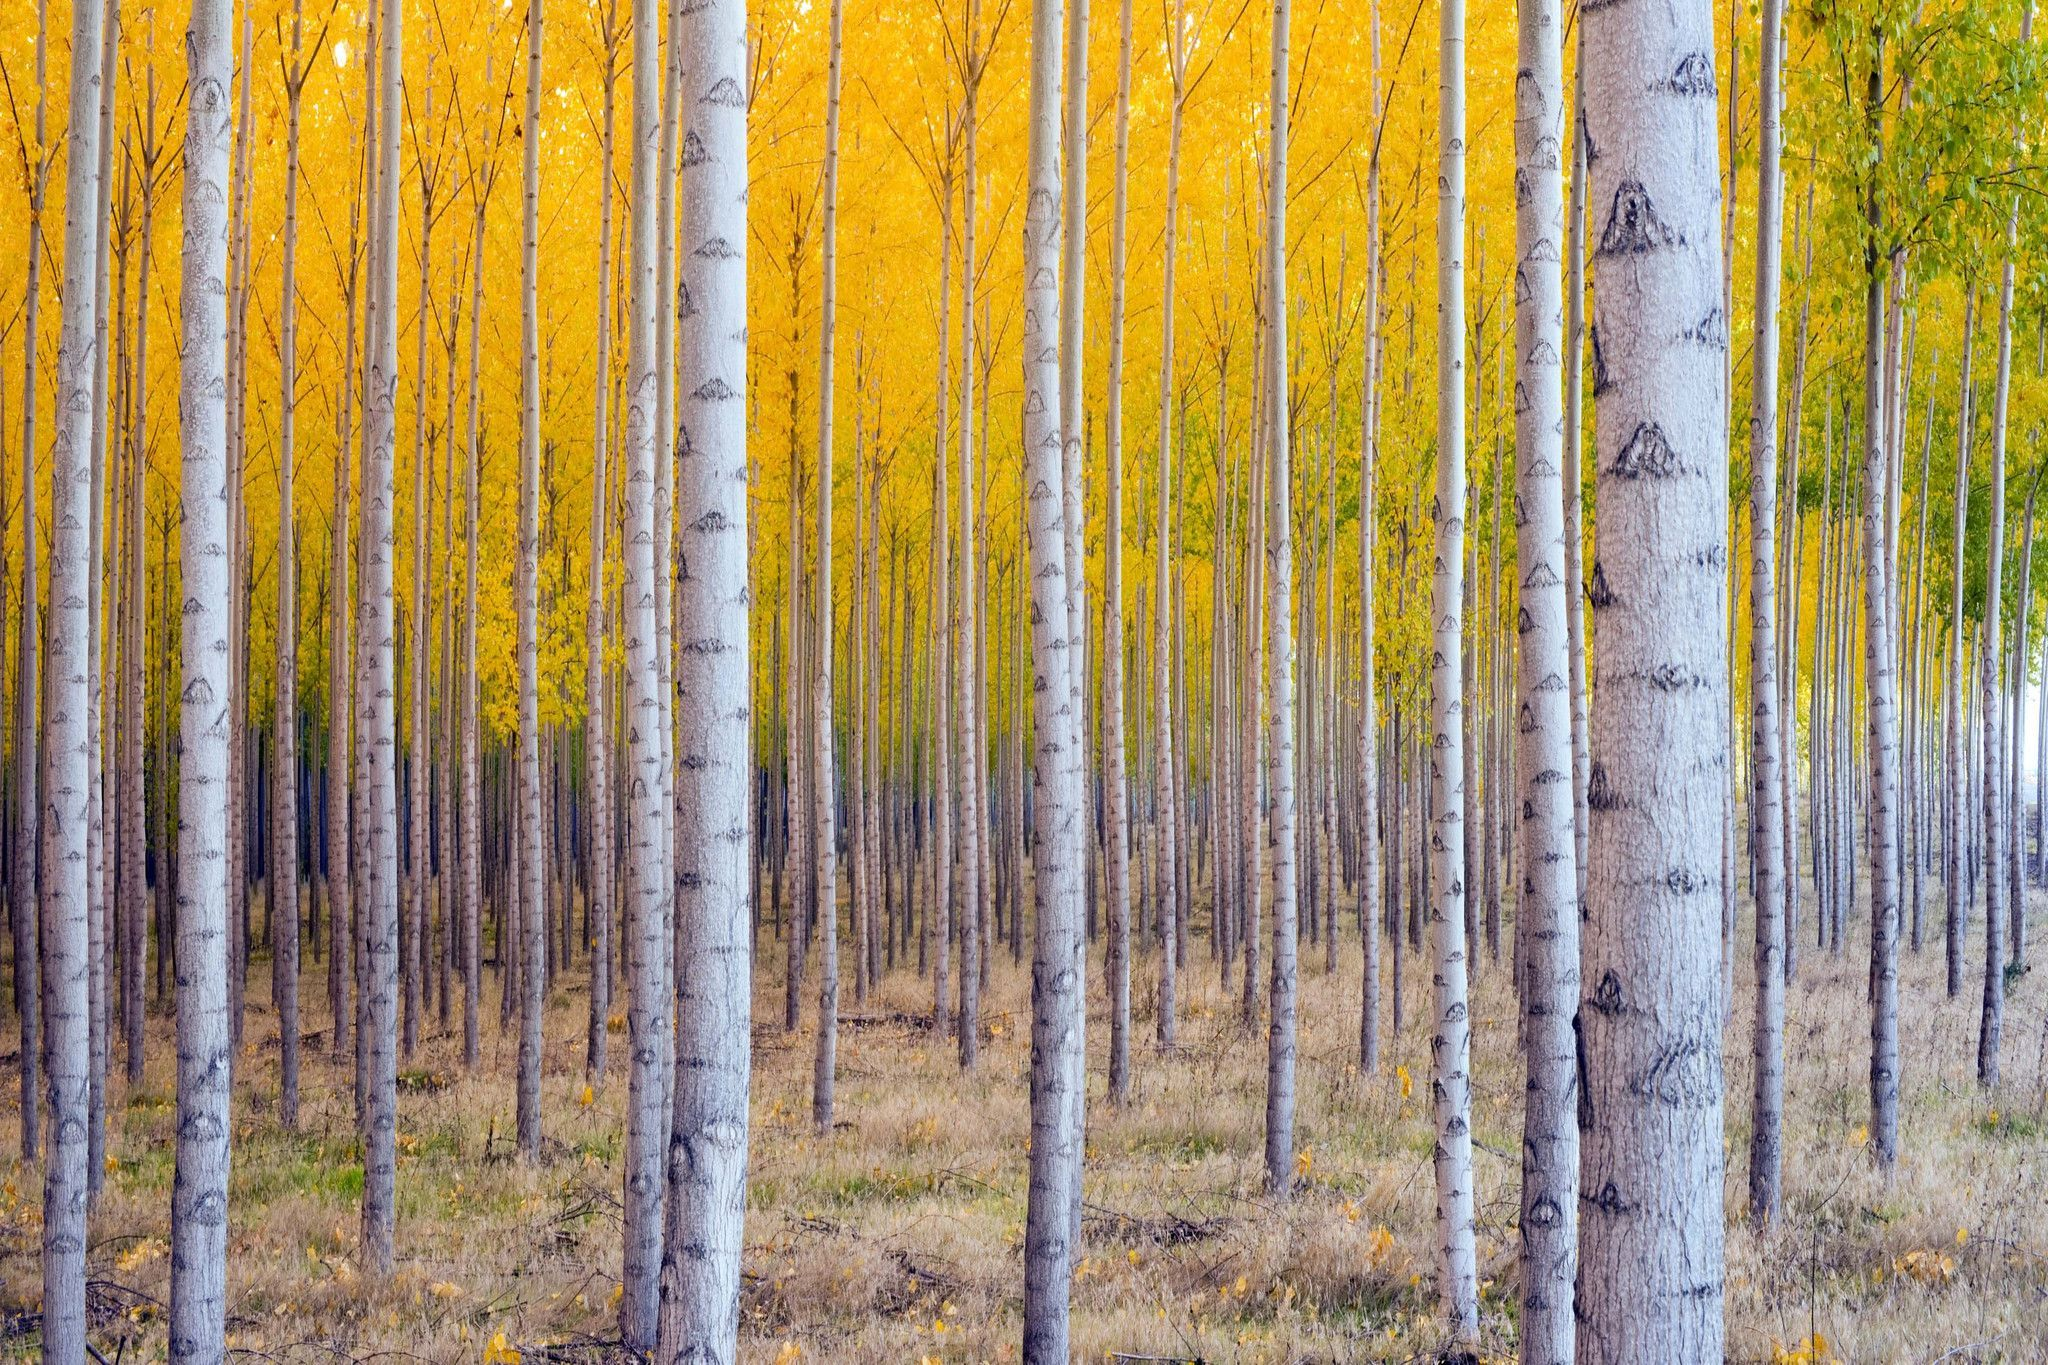 Birch Trees - Large Canvas Photography - Large Canvas Wall Art ...